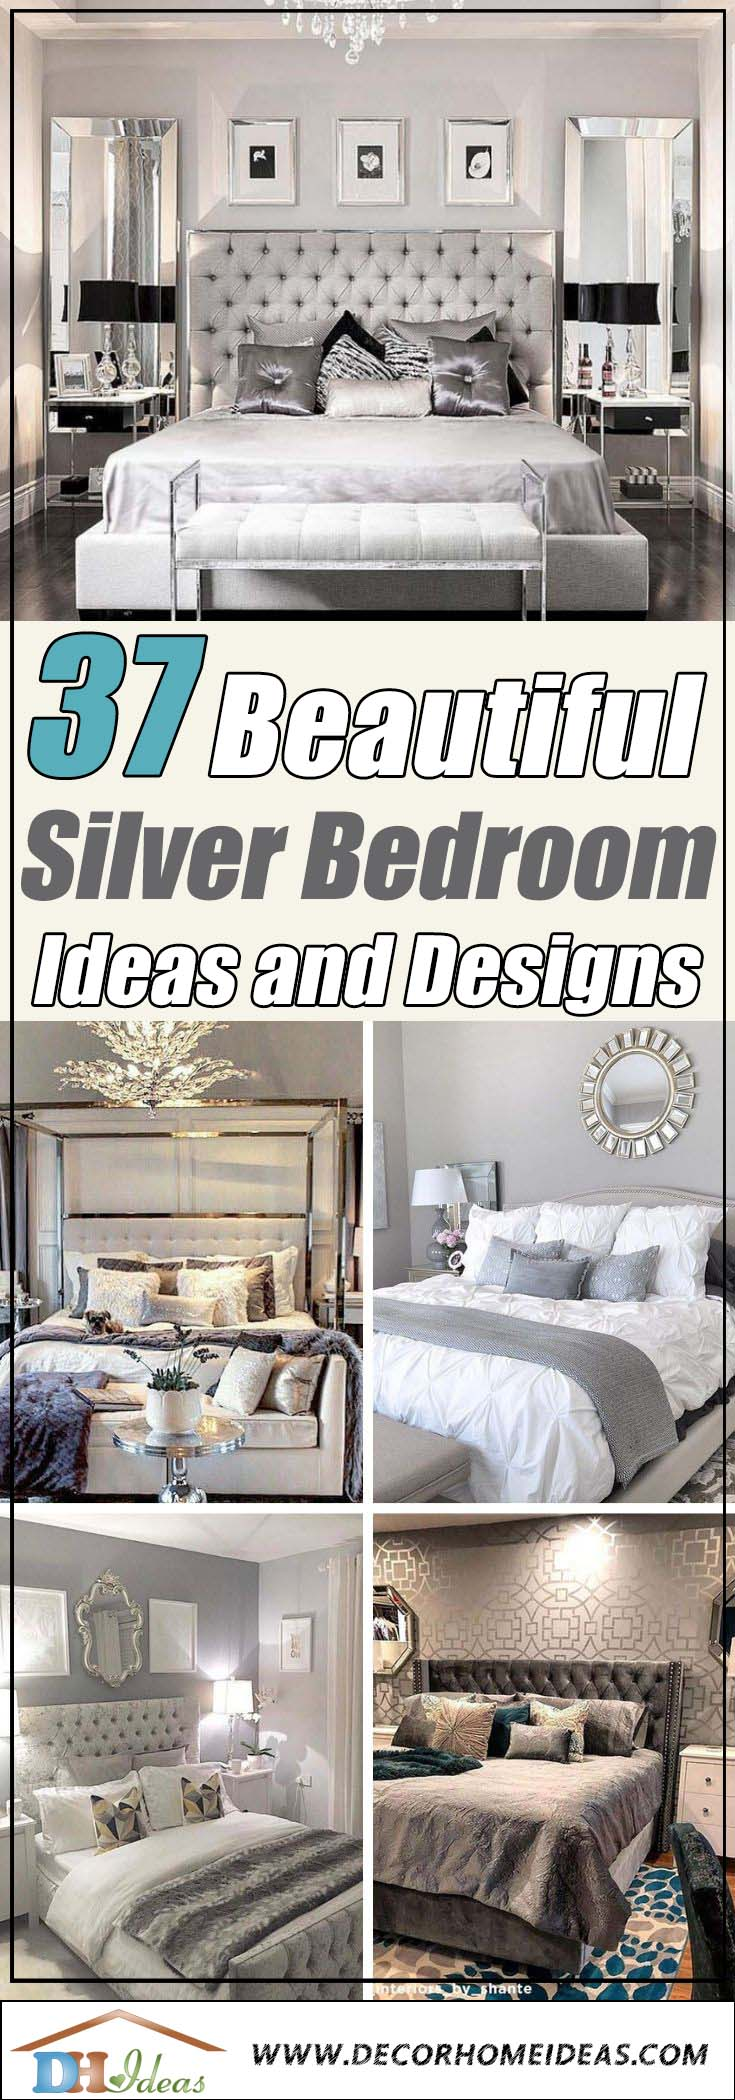 Beautiful Silver Bedroom Ideas and Designs. Silver and pink, silver and white, silver and grey, silver and teal or purple and gold. #bedroom #silver #decorhomeideas